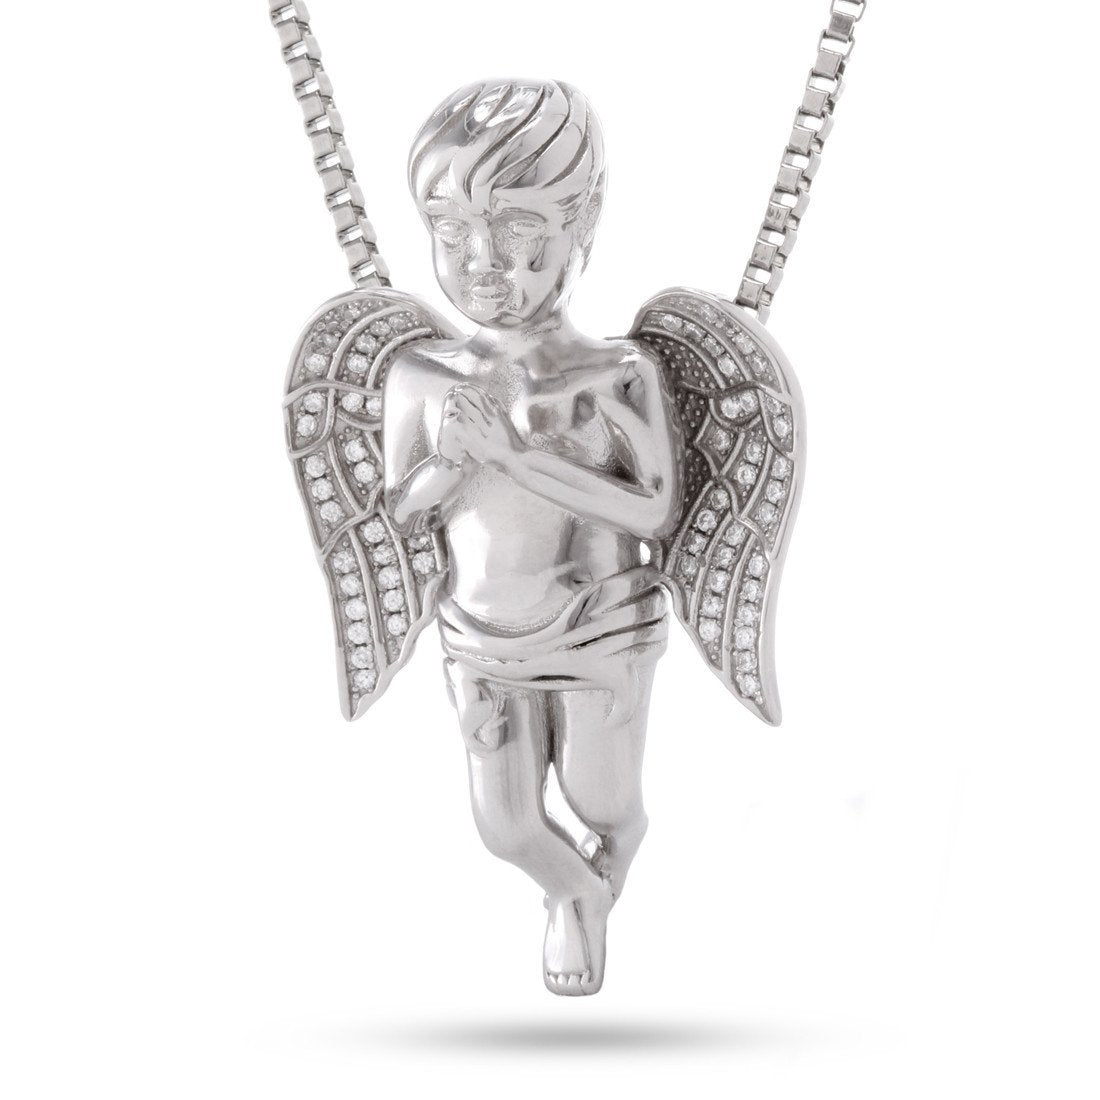 Pendants - .925 Sterling Silver CZ Praying Angel Necklace -   jetcube